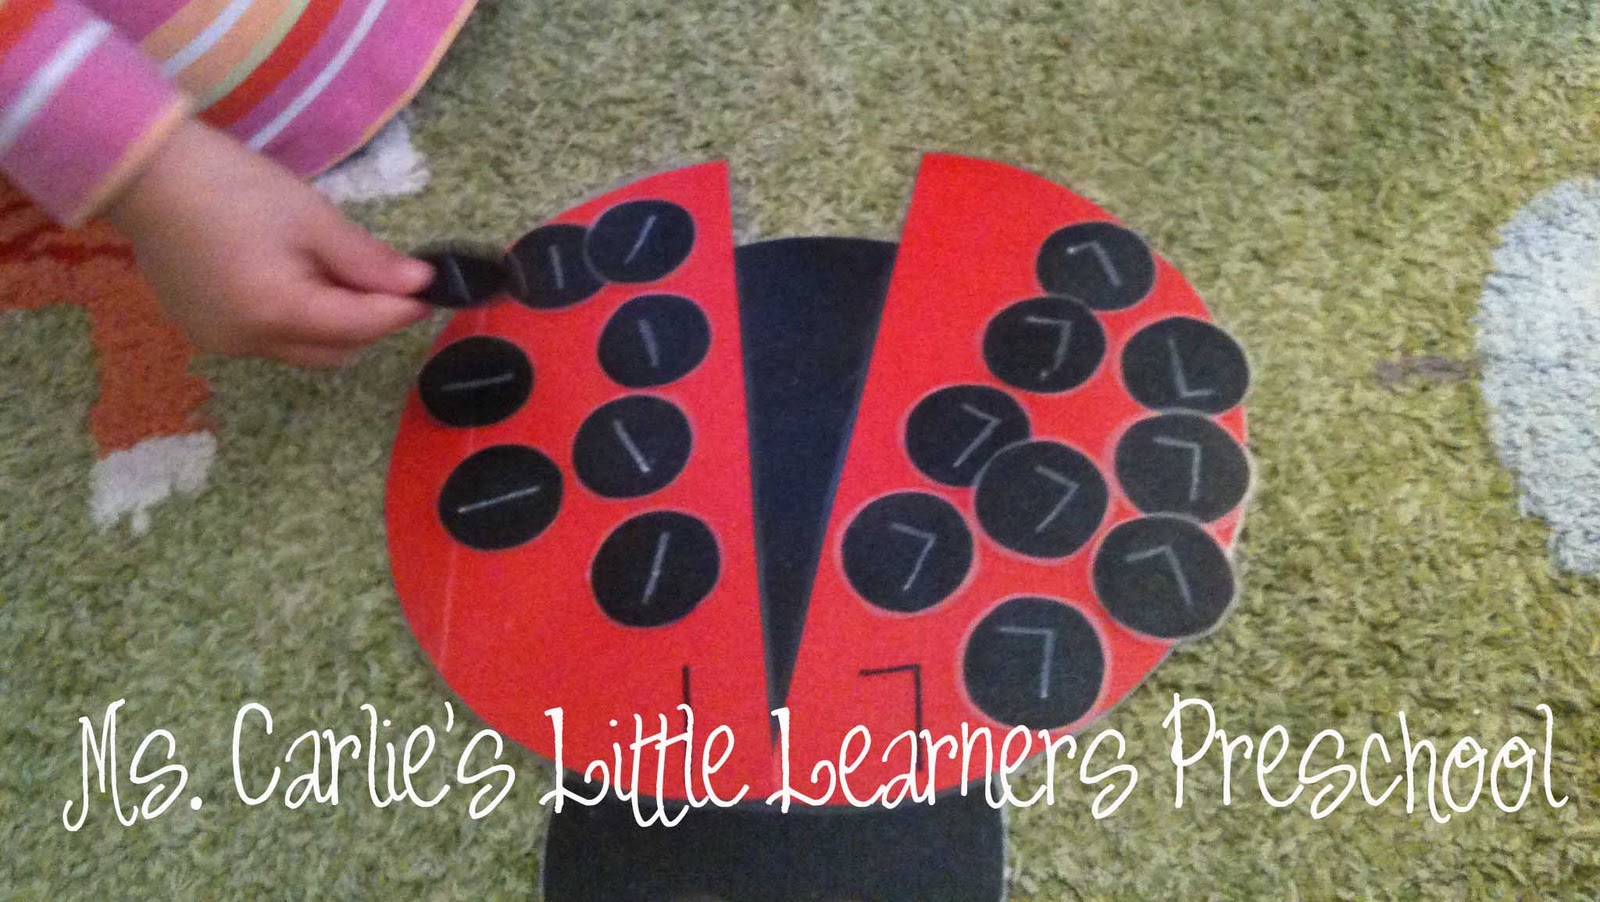 Ms Carlie S Little Learners Preschool Letter L Games And Activities